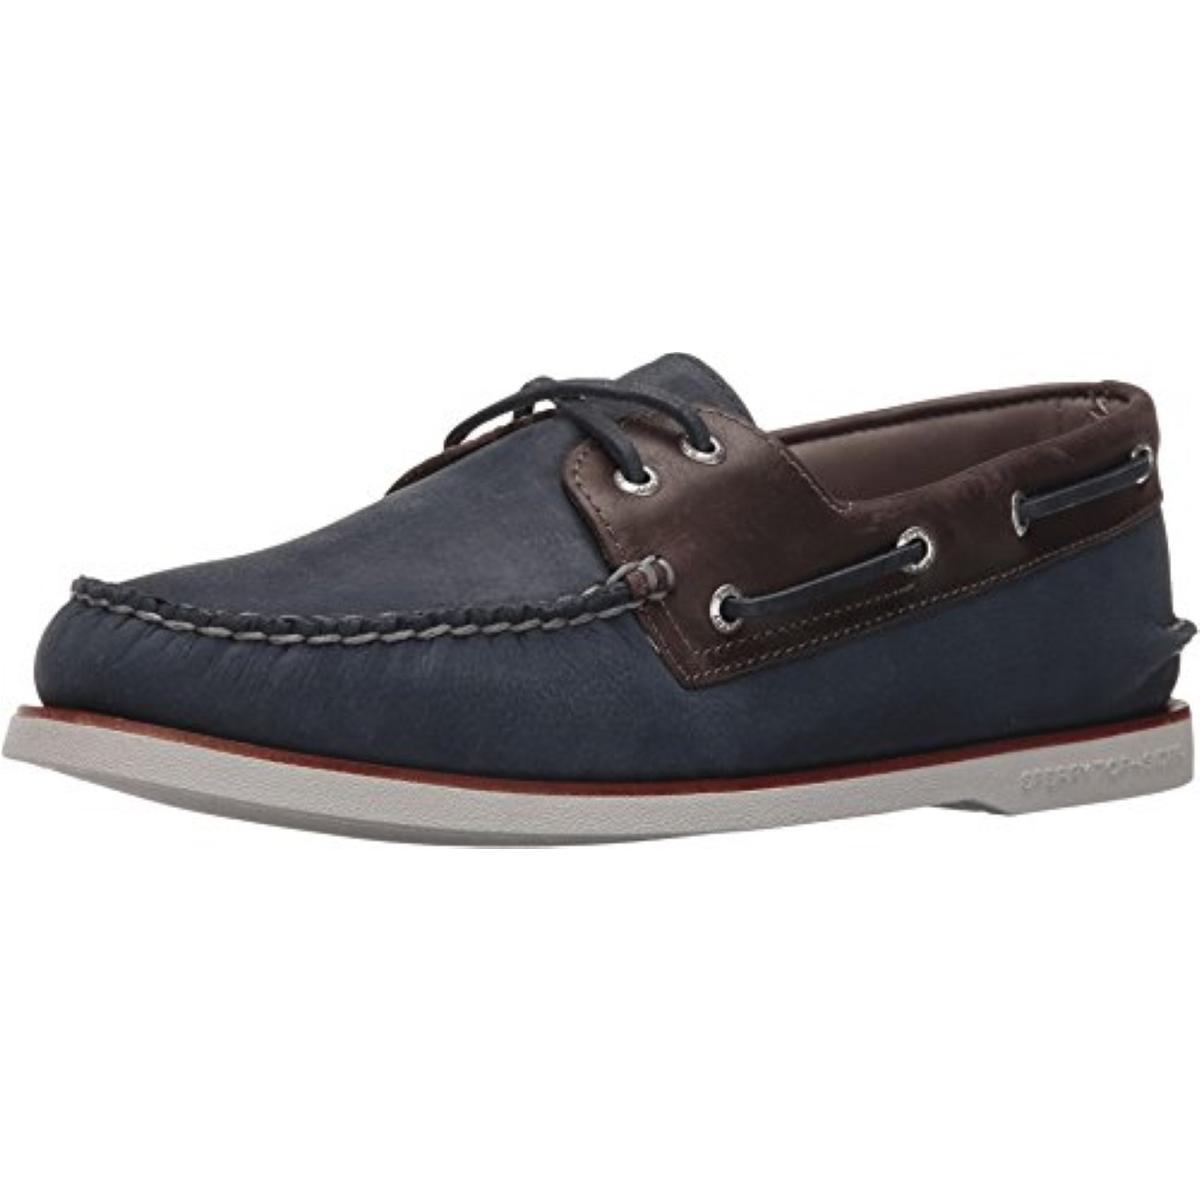 Sperry Top-Sider Gold A/O Camino Mens Navy/Grey Boat Shoes